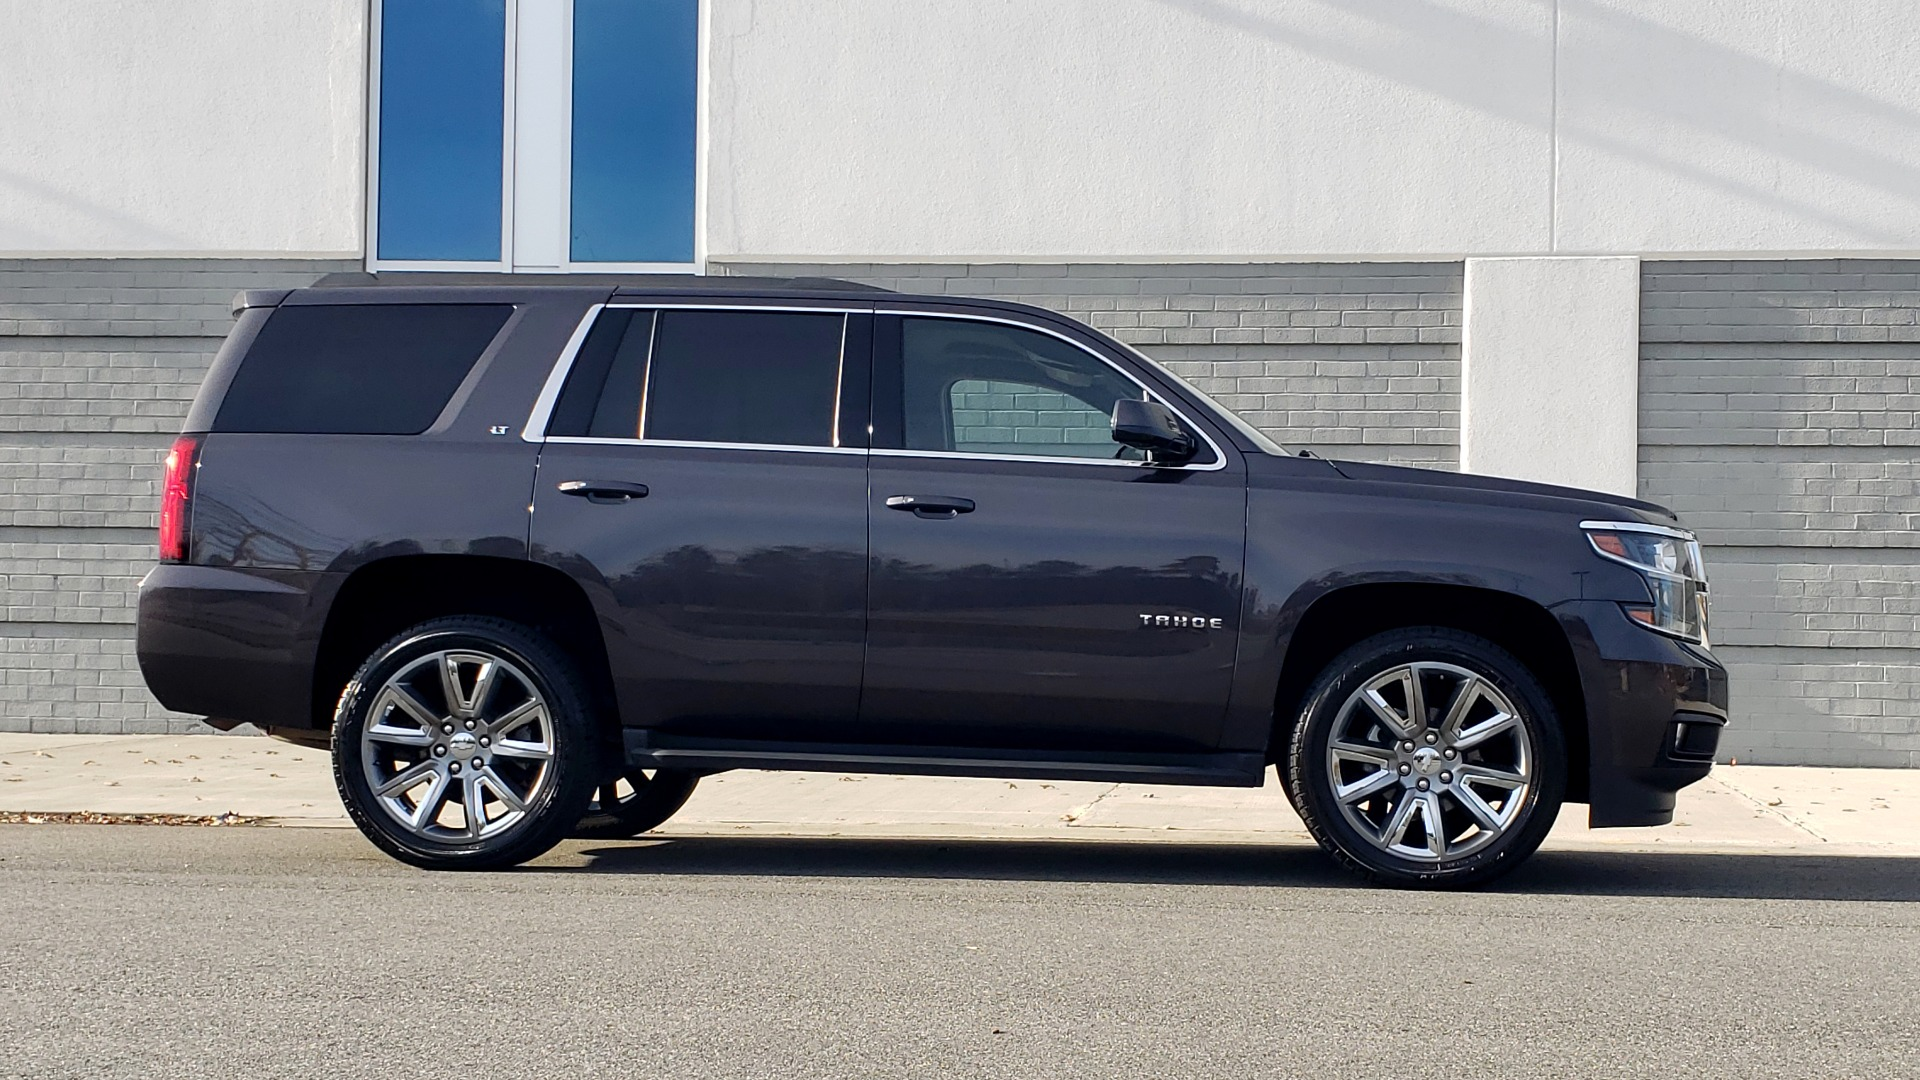 Used 2017 Chevrolet TAHOE 4WD LT / LUXURY PKG / NAV / BOSE / 3-ROW / REARVIEW for sale Sold at Formula Imports in Charlotte NC 28227 7